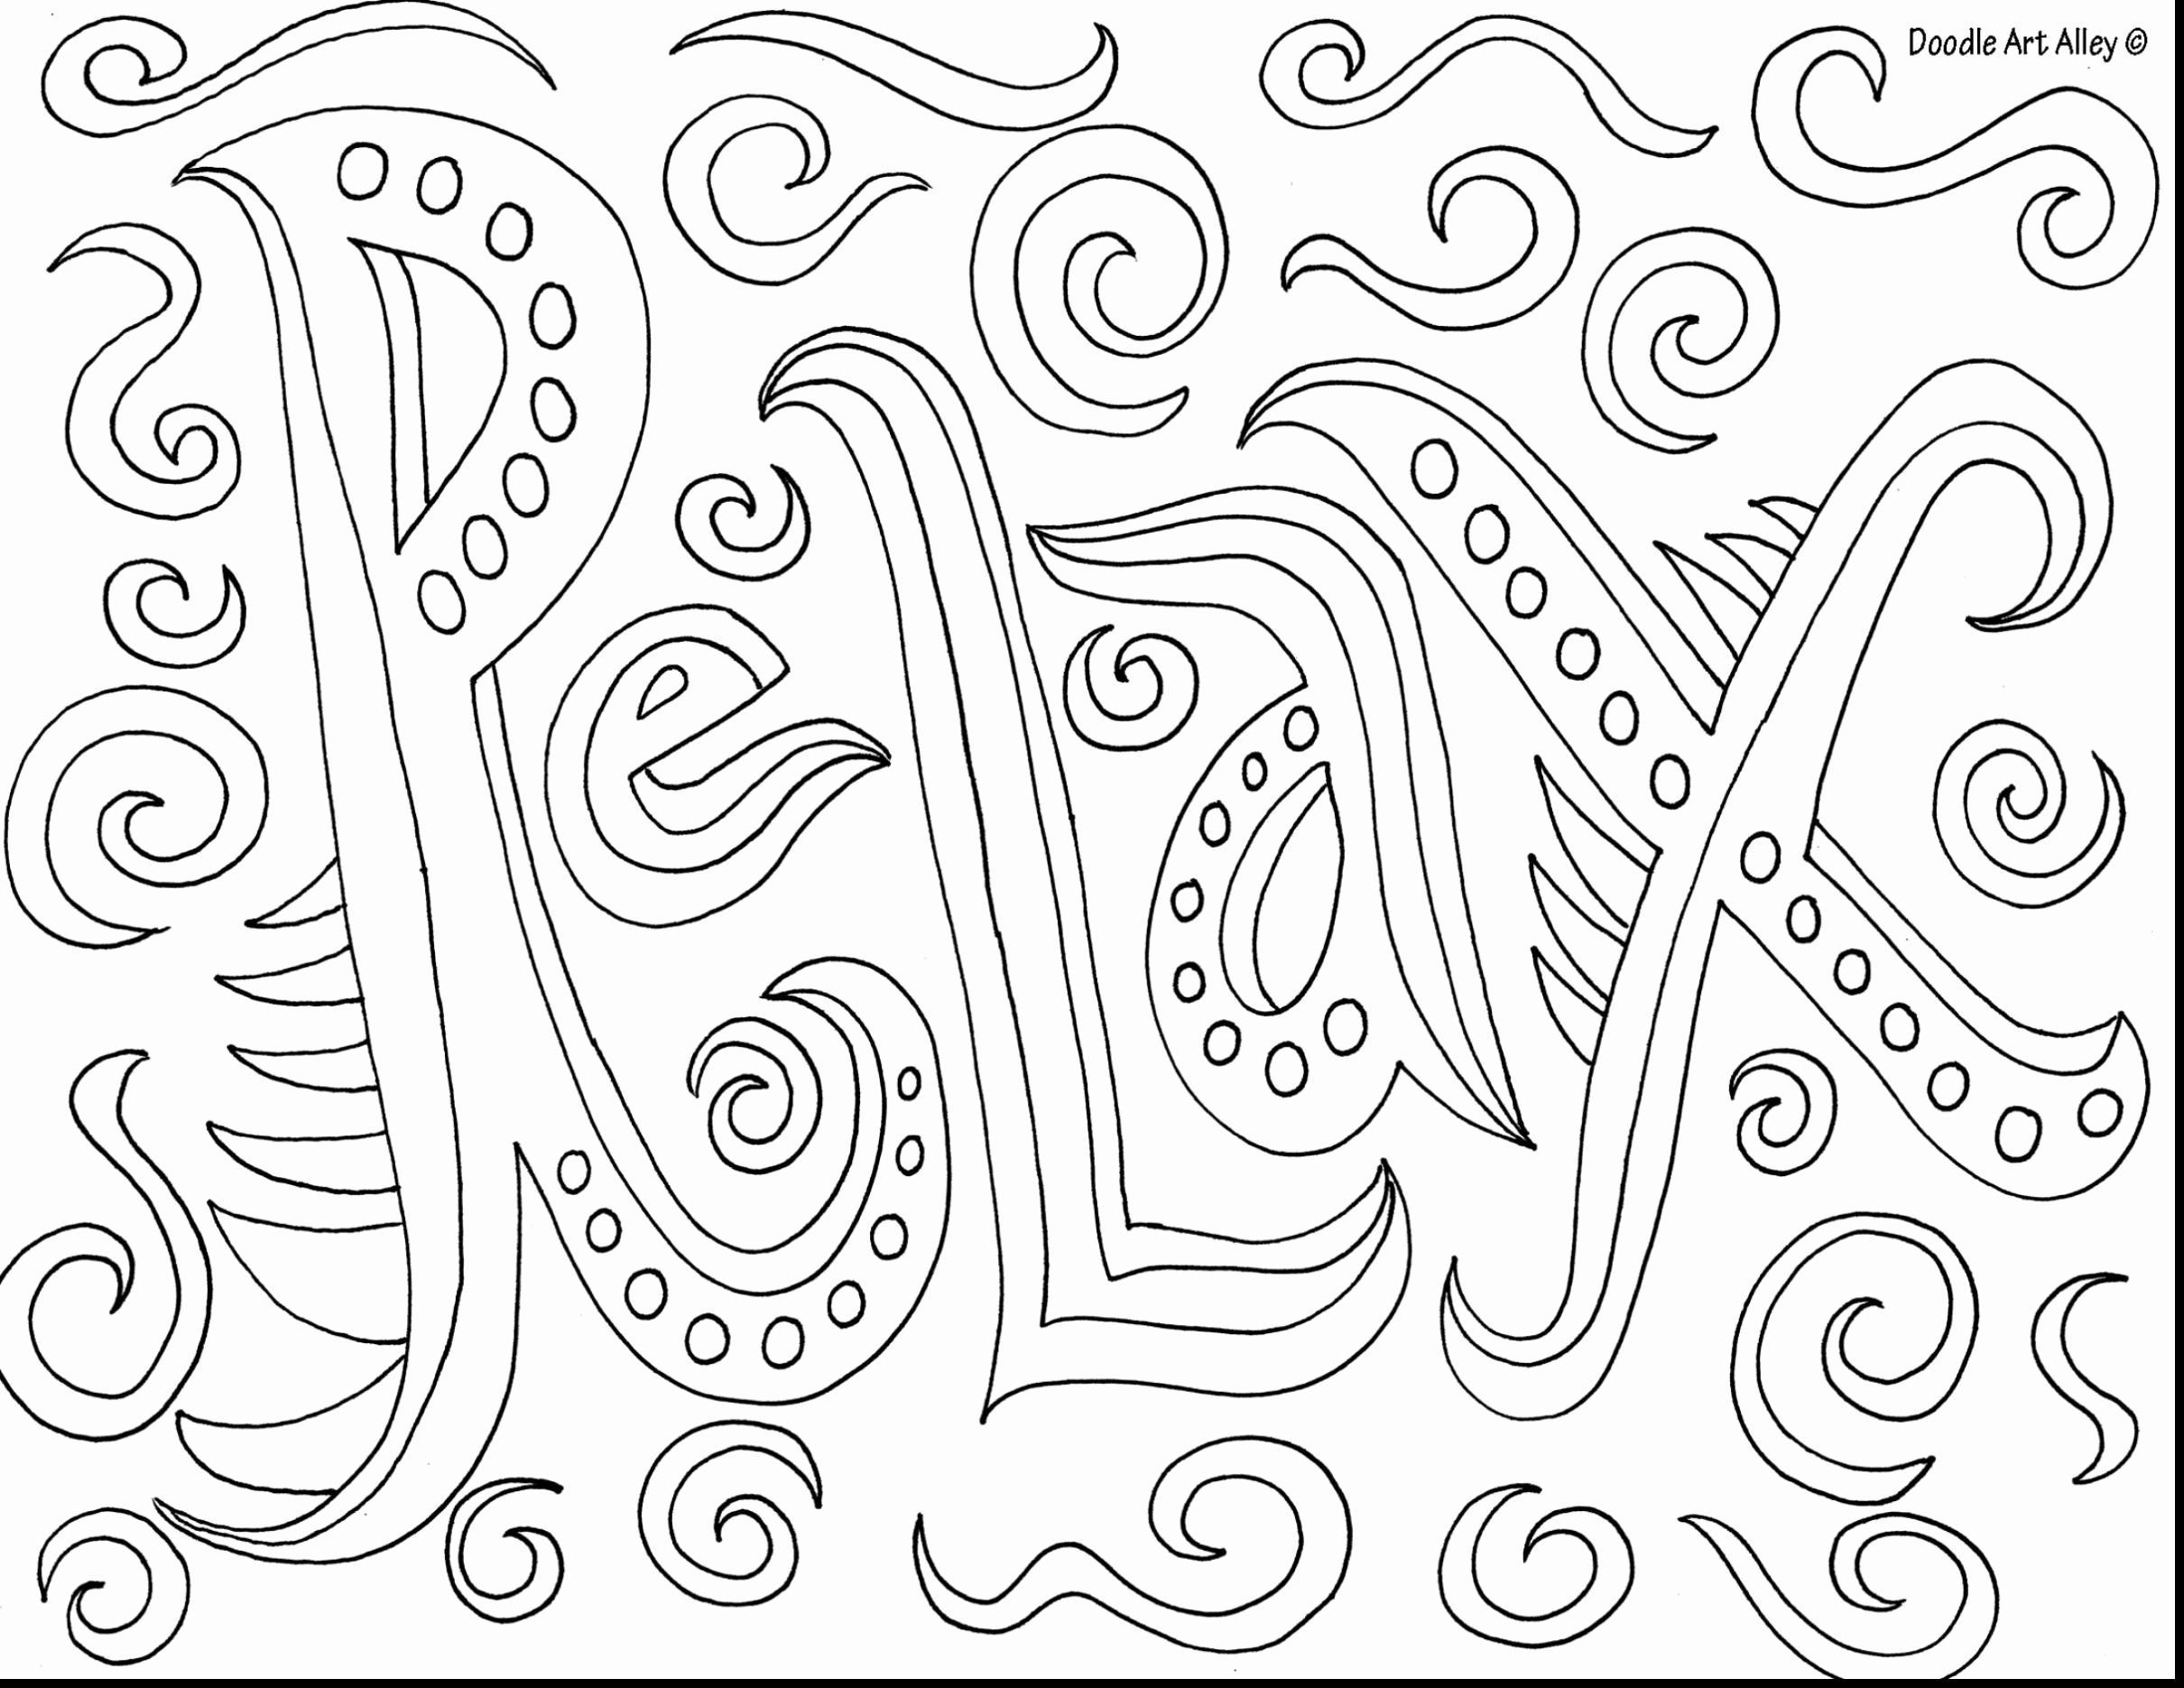 Architecture Coloring Printable Lovely Art Therapy Coloring Pages Fresh Llama Co Hailey Queen Relaxing Coloring Book Mindfulness Colouring Coloring Books